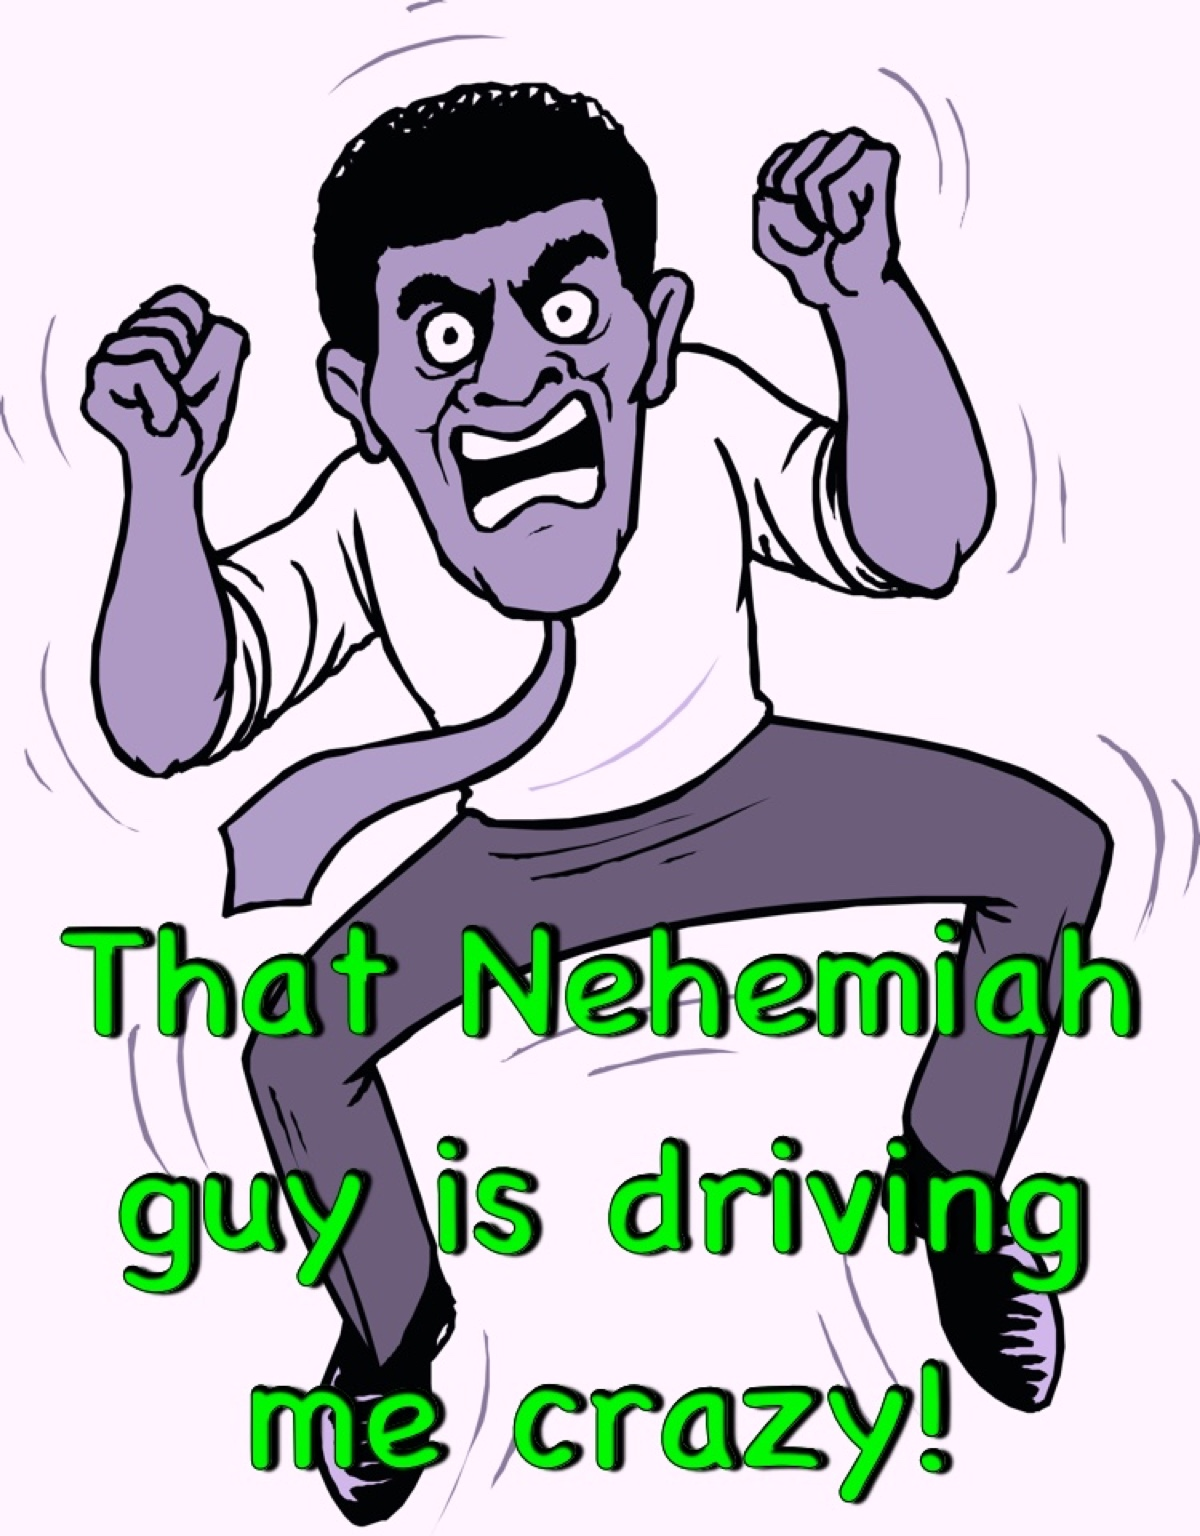 Efforts to destroy Governor Nehemiah, Part1